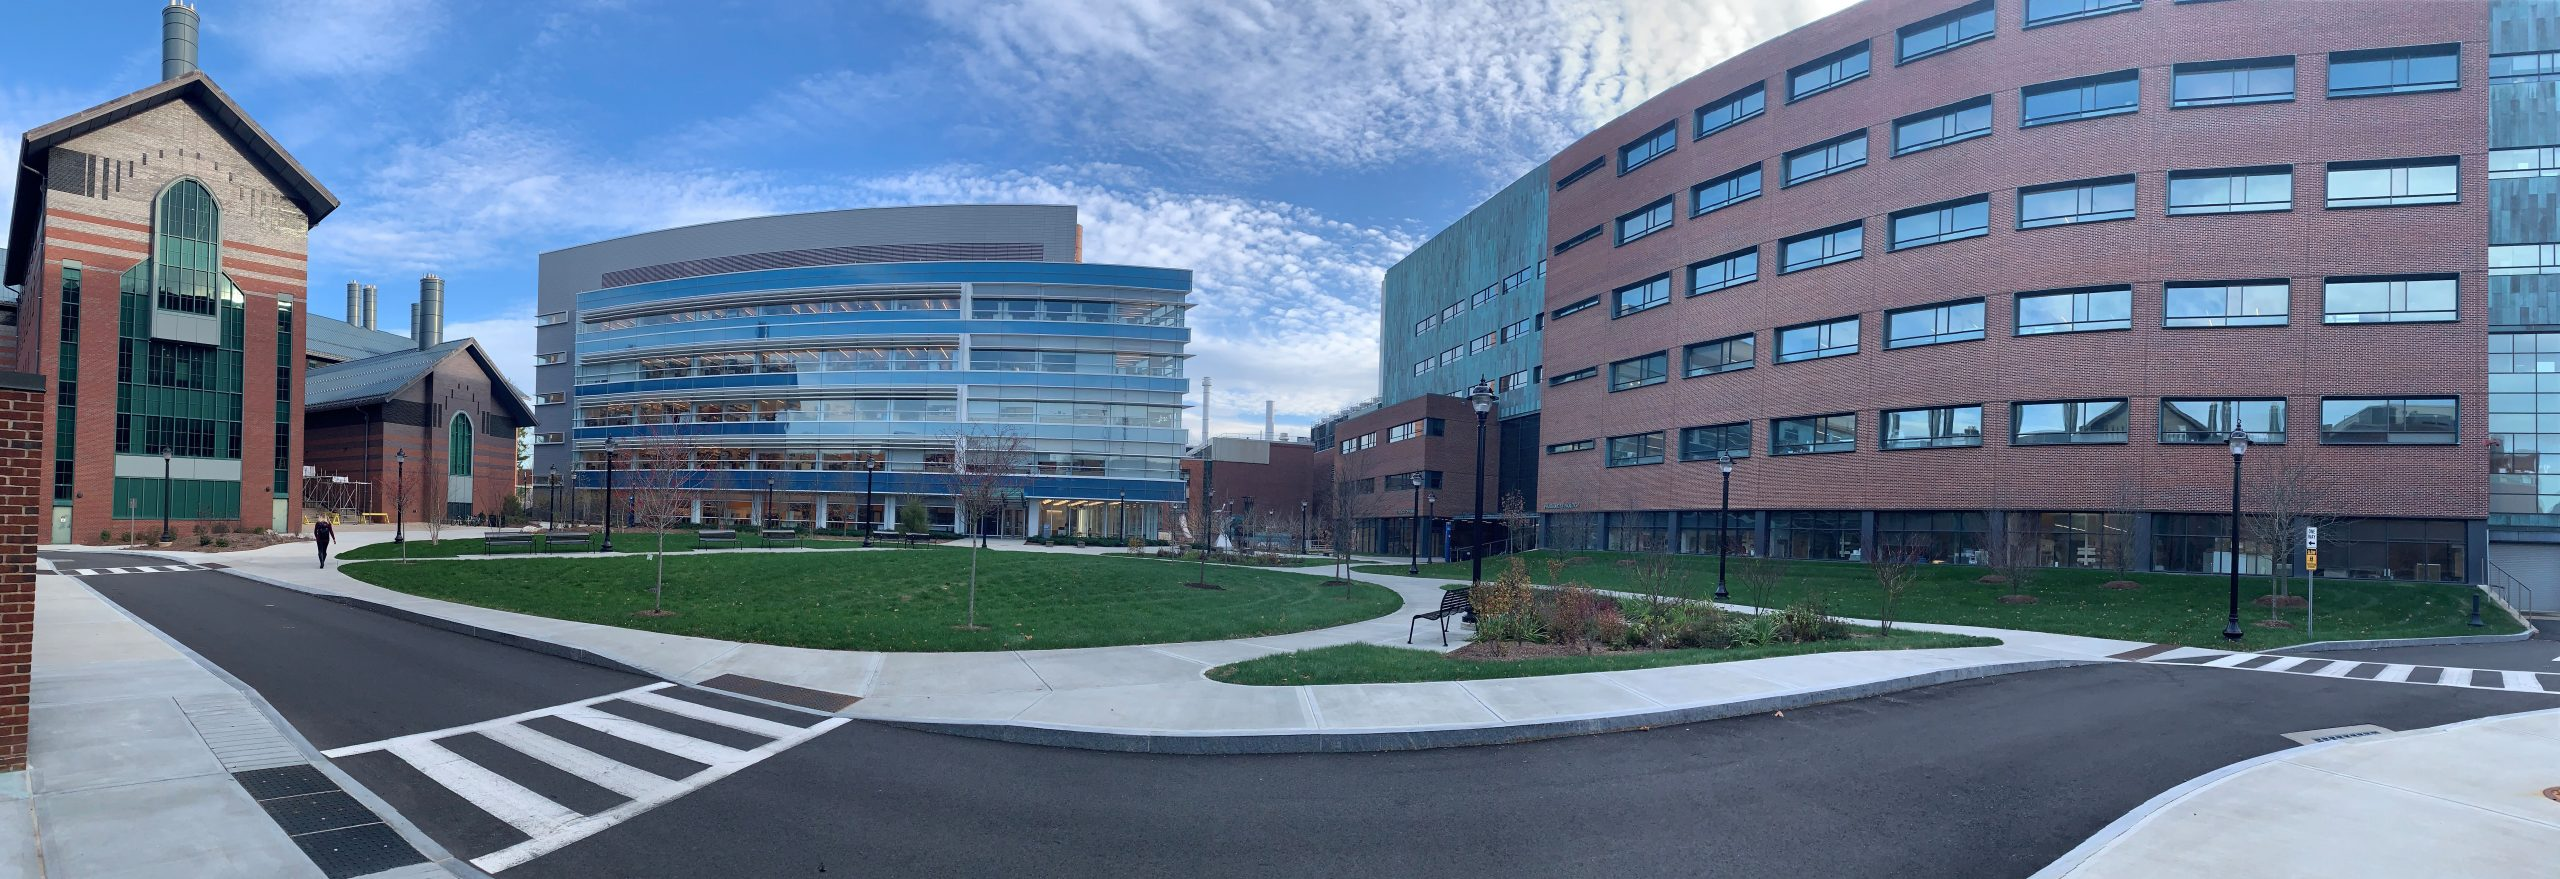 Image of the science quad